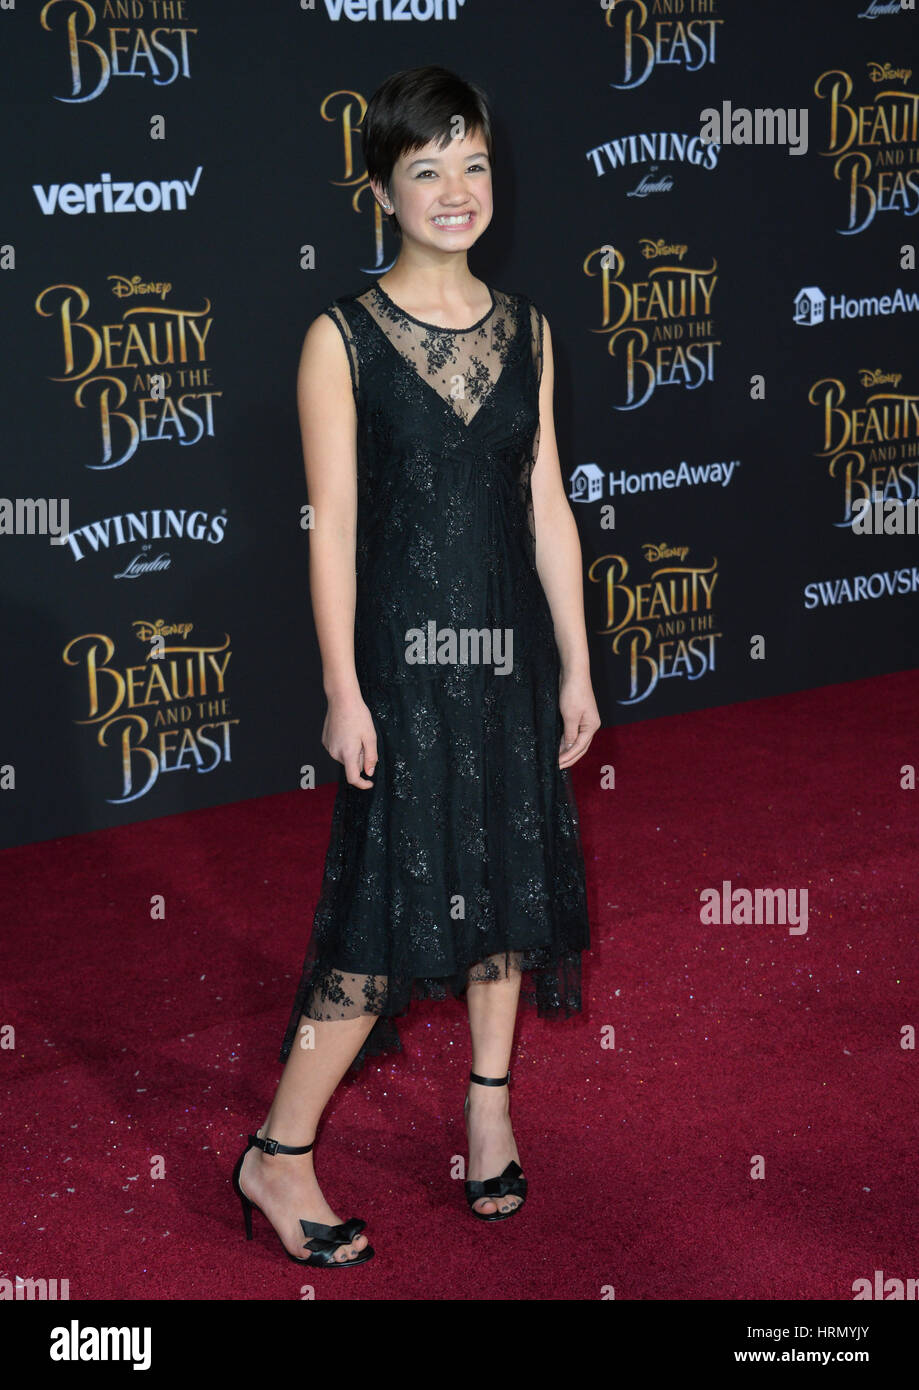 Los Angeles, USA. 02nd Mar, 2017. Actress Peyton Elizabeth Lee at the premiere for Disney's 'Beauty and - Stock Image